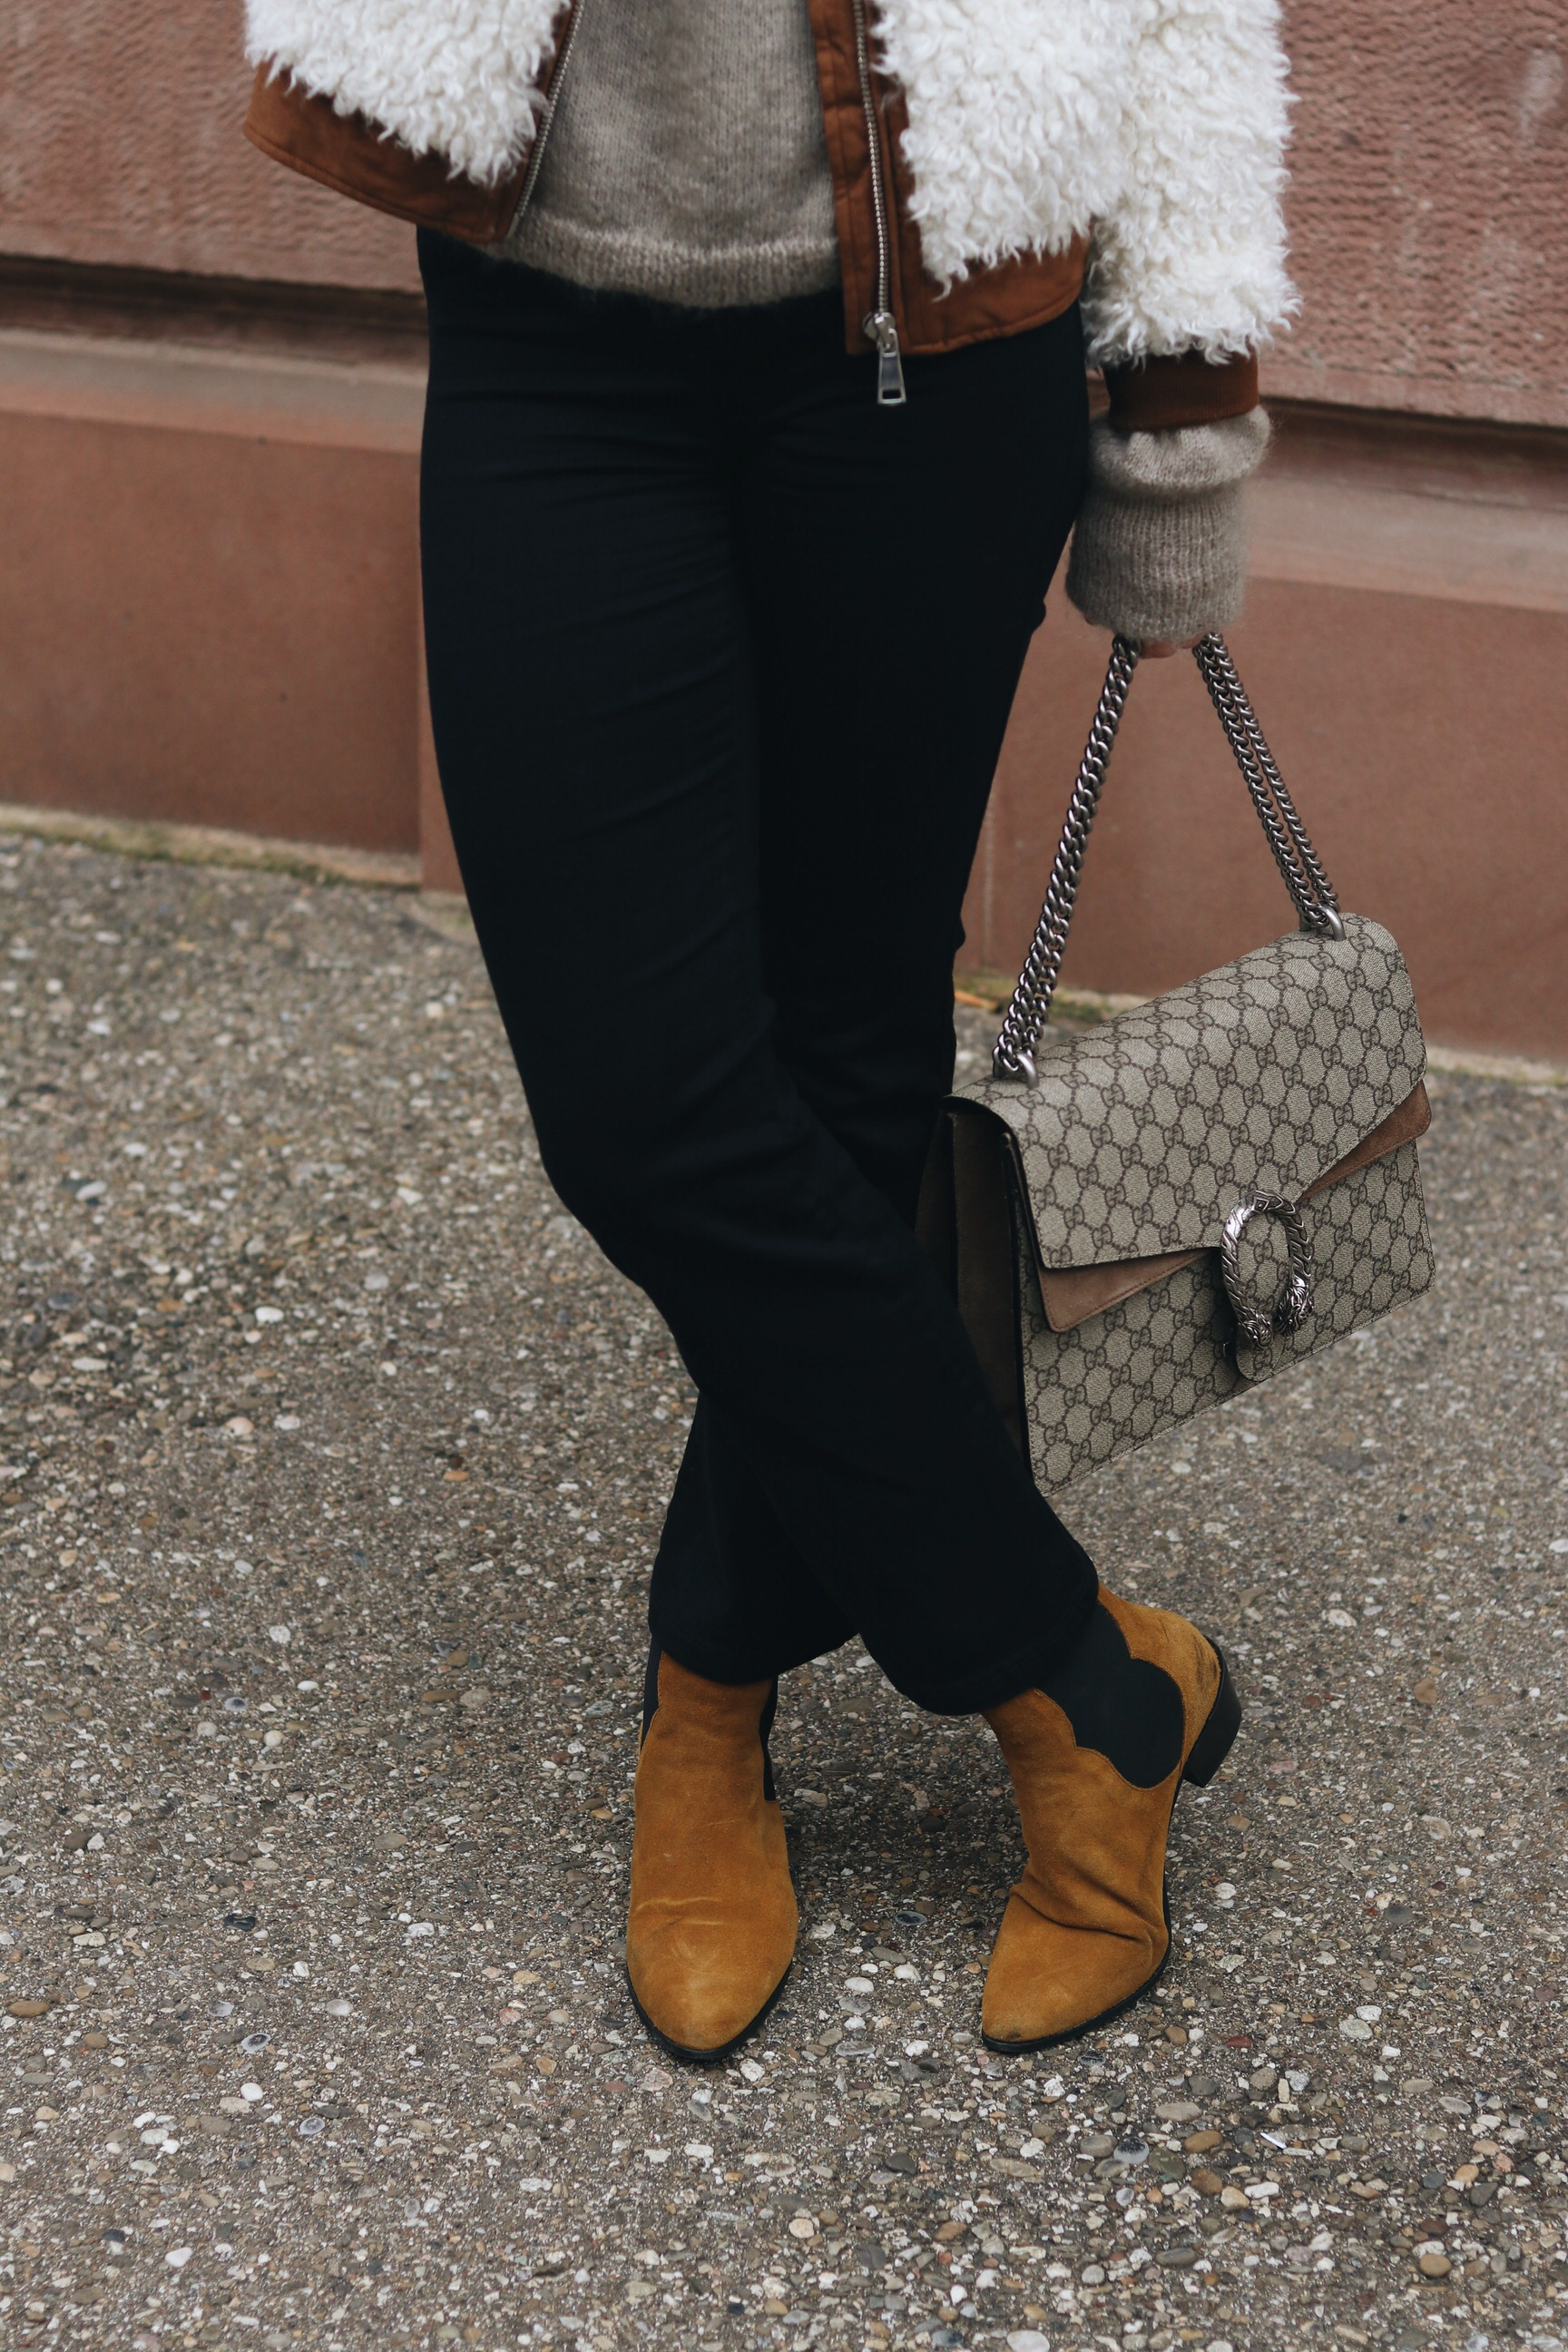 kickflare Jeans Outfitpost Bloggerin Neele kombinieren French Chic Gucci Dionysus